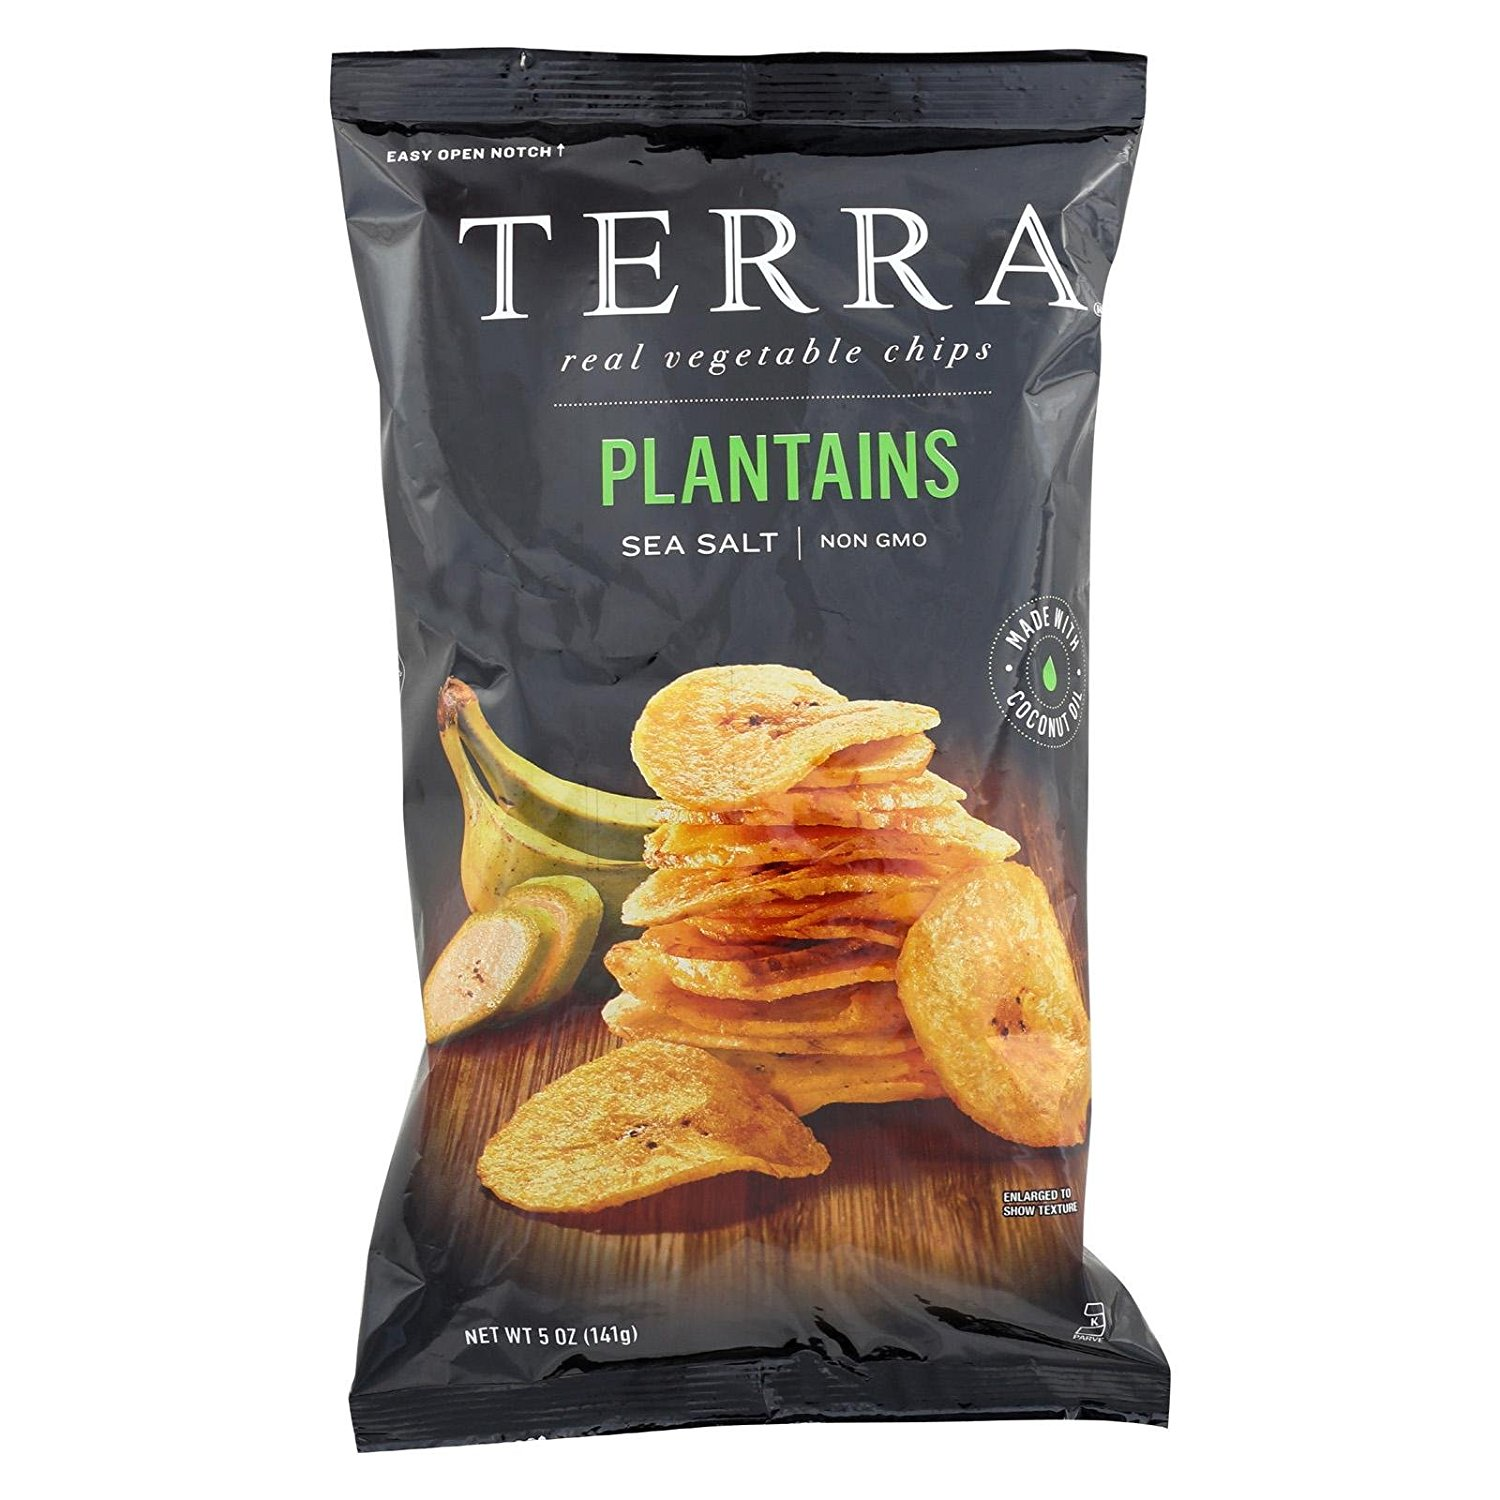 Whole Foods Vegetable Chips Healthy